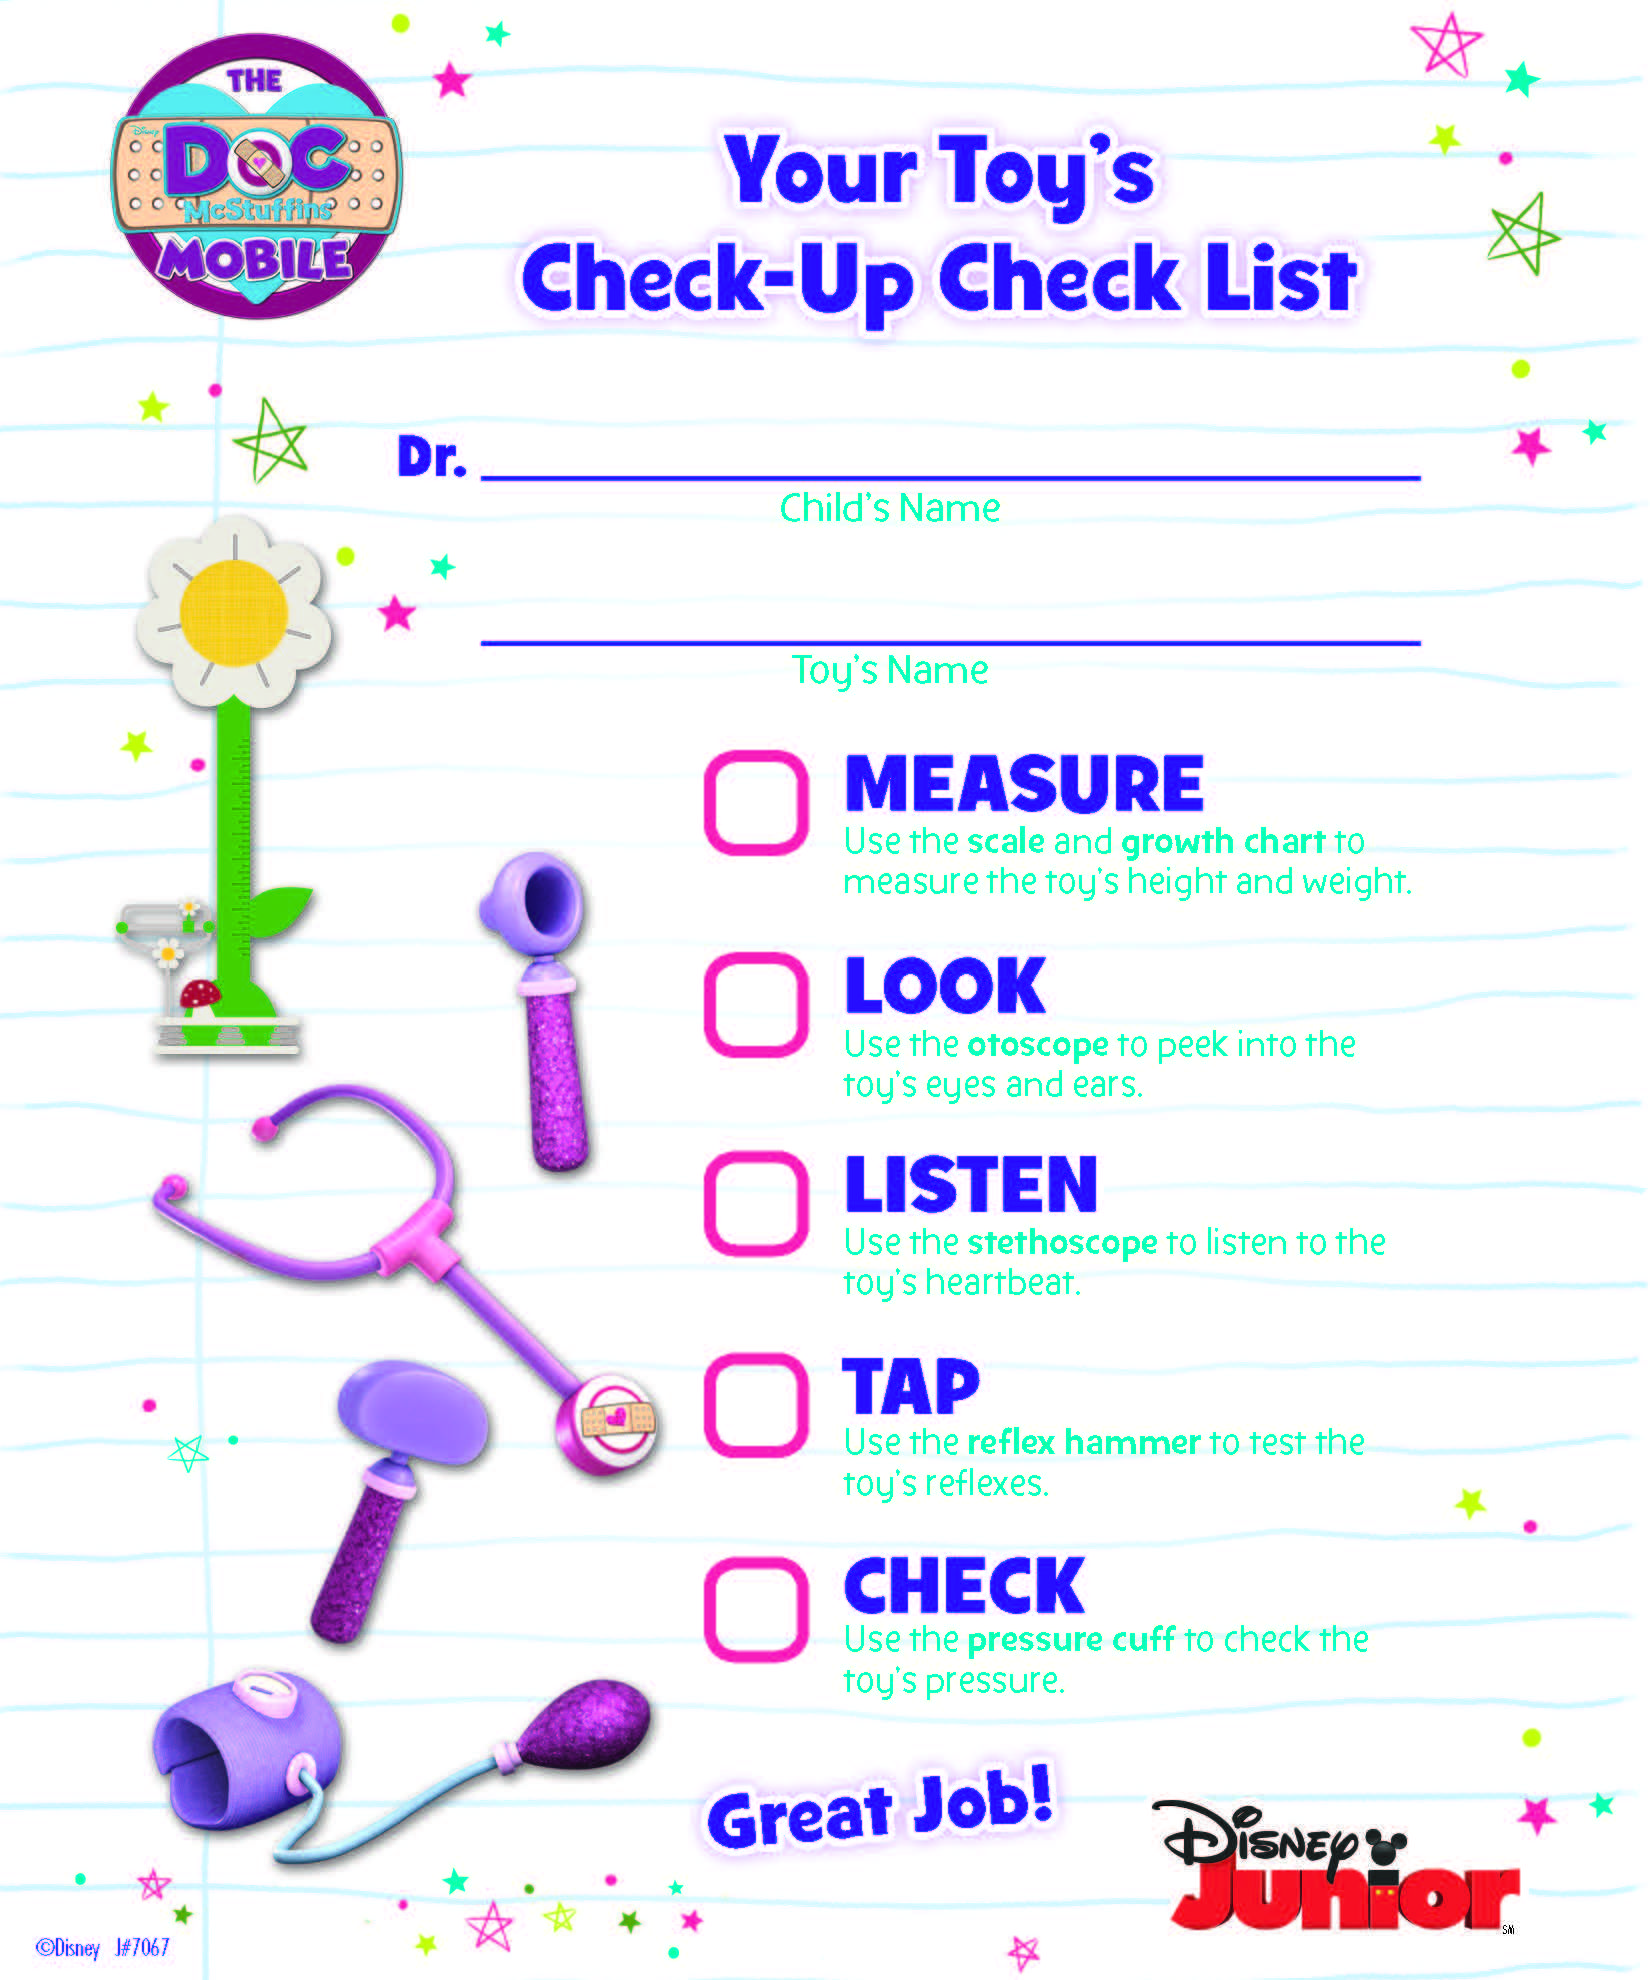 Now your little one can give their toy a check-up at home with this ...